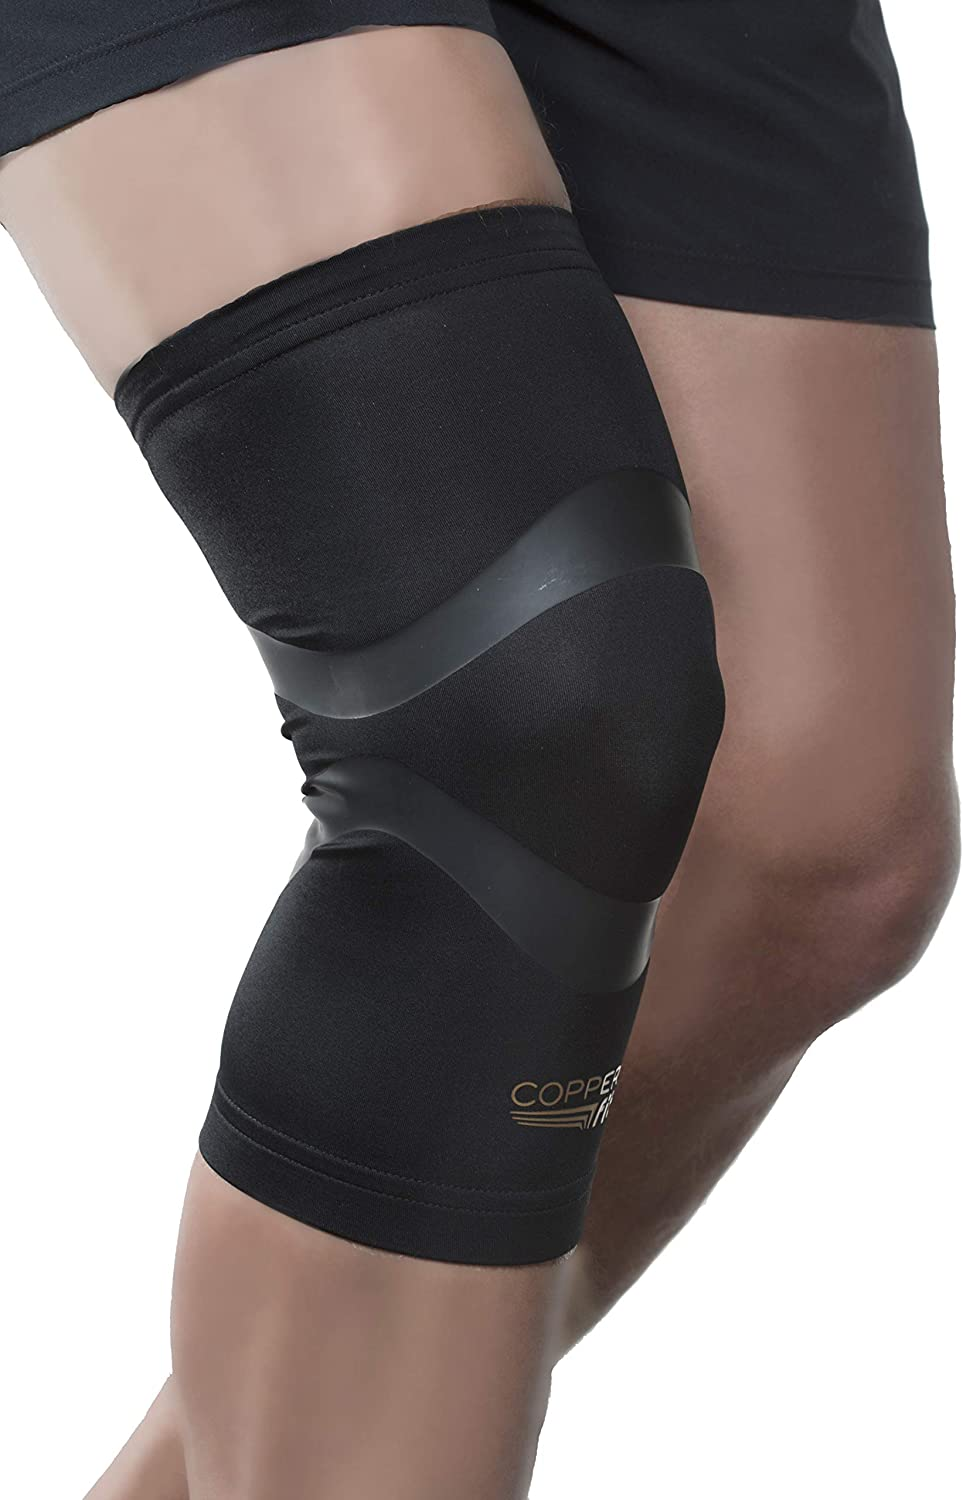 Copper Fit Pro Series Compression Knee Sleeve,Packaging may Vary: Clothing